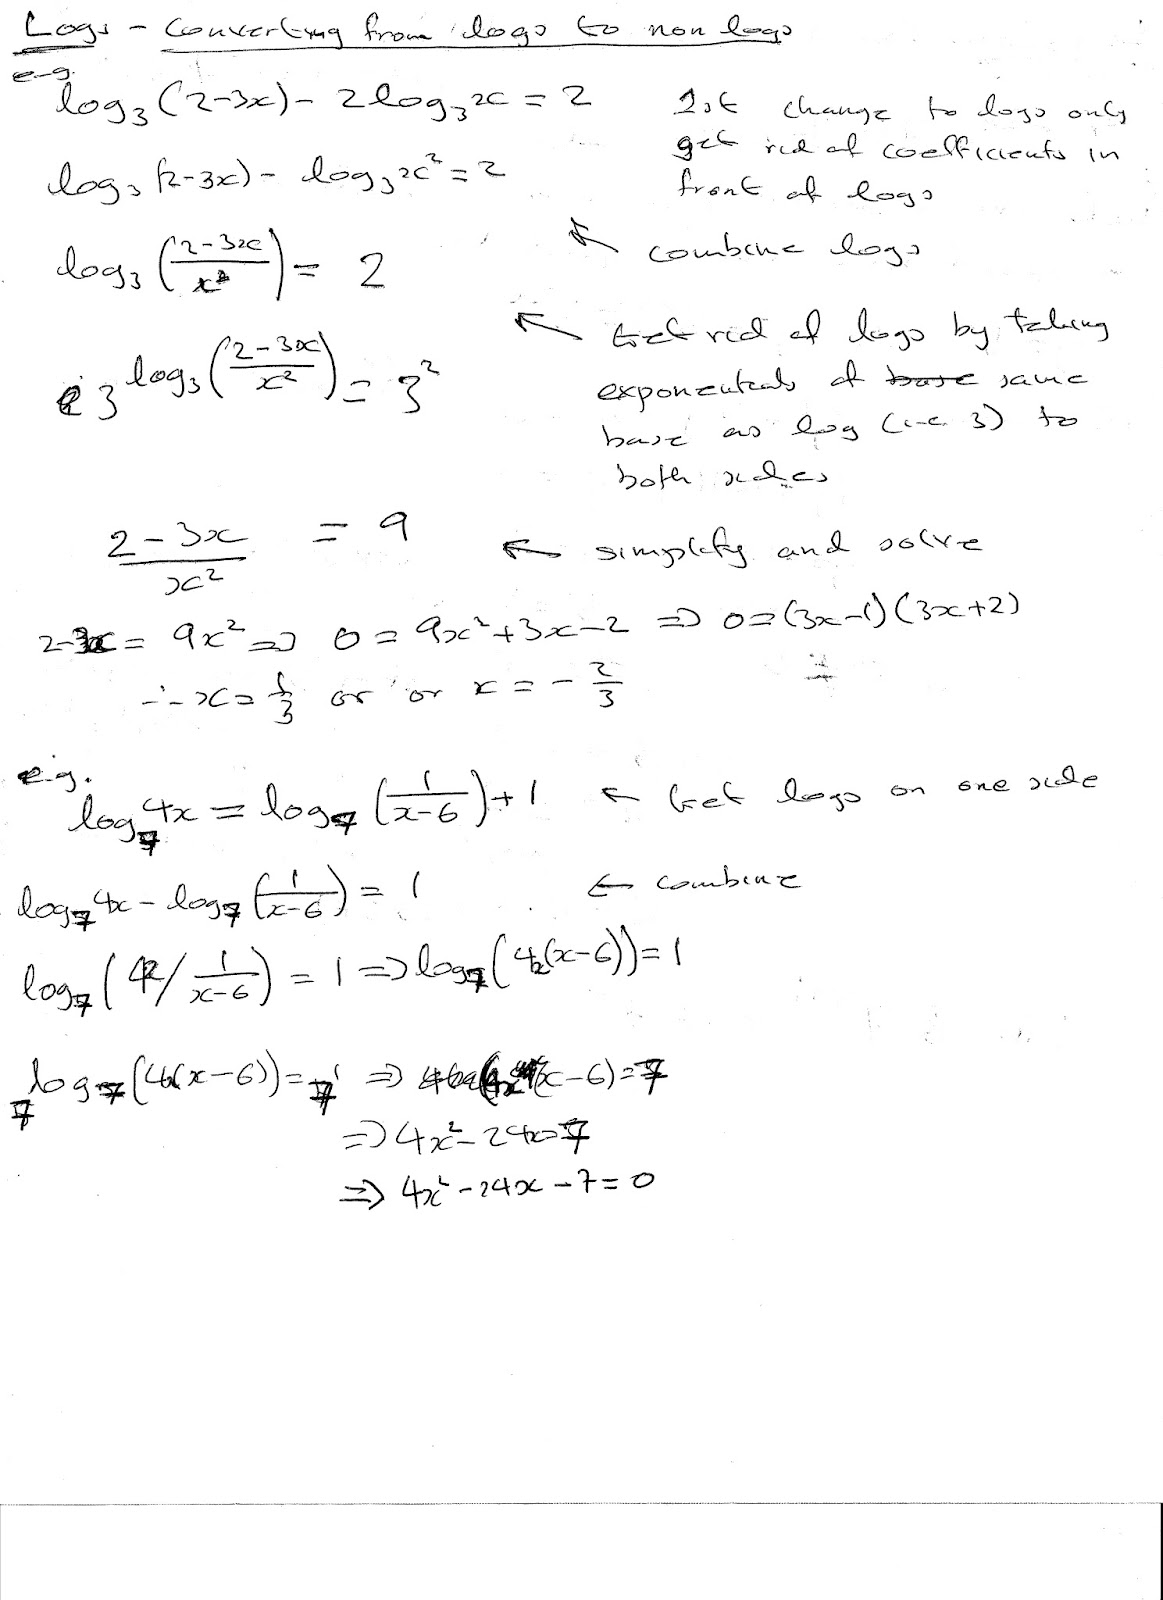 worksheet Exponential Equations Not Requiring Logarithms similiar exponential equations without solving logarithms keywords level maths notes log and equations